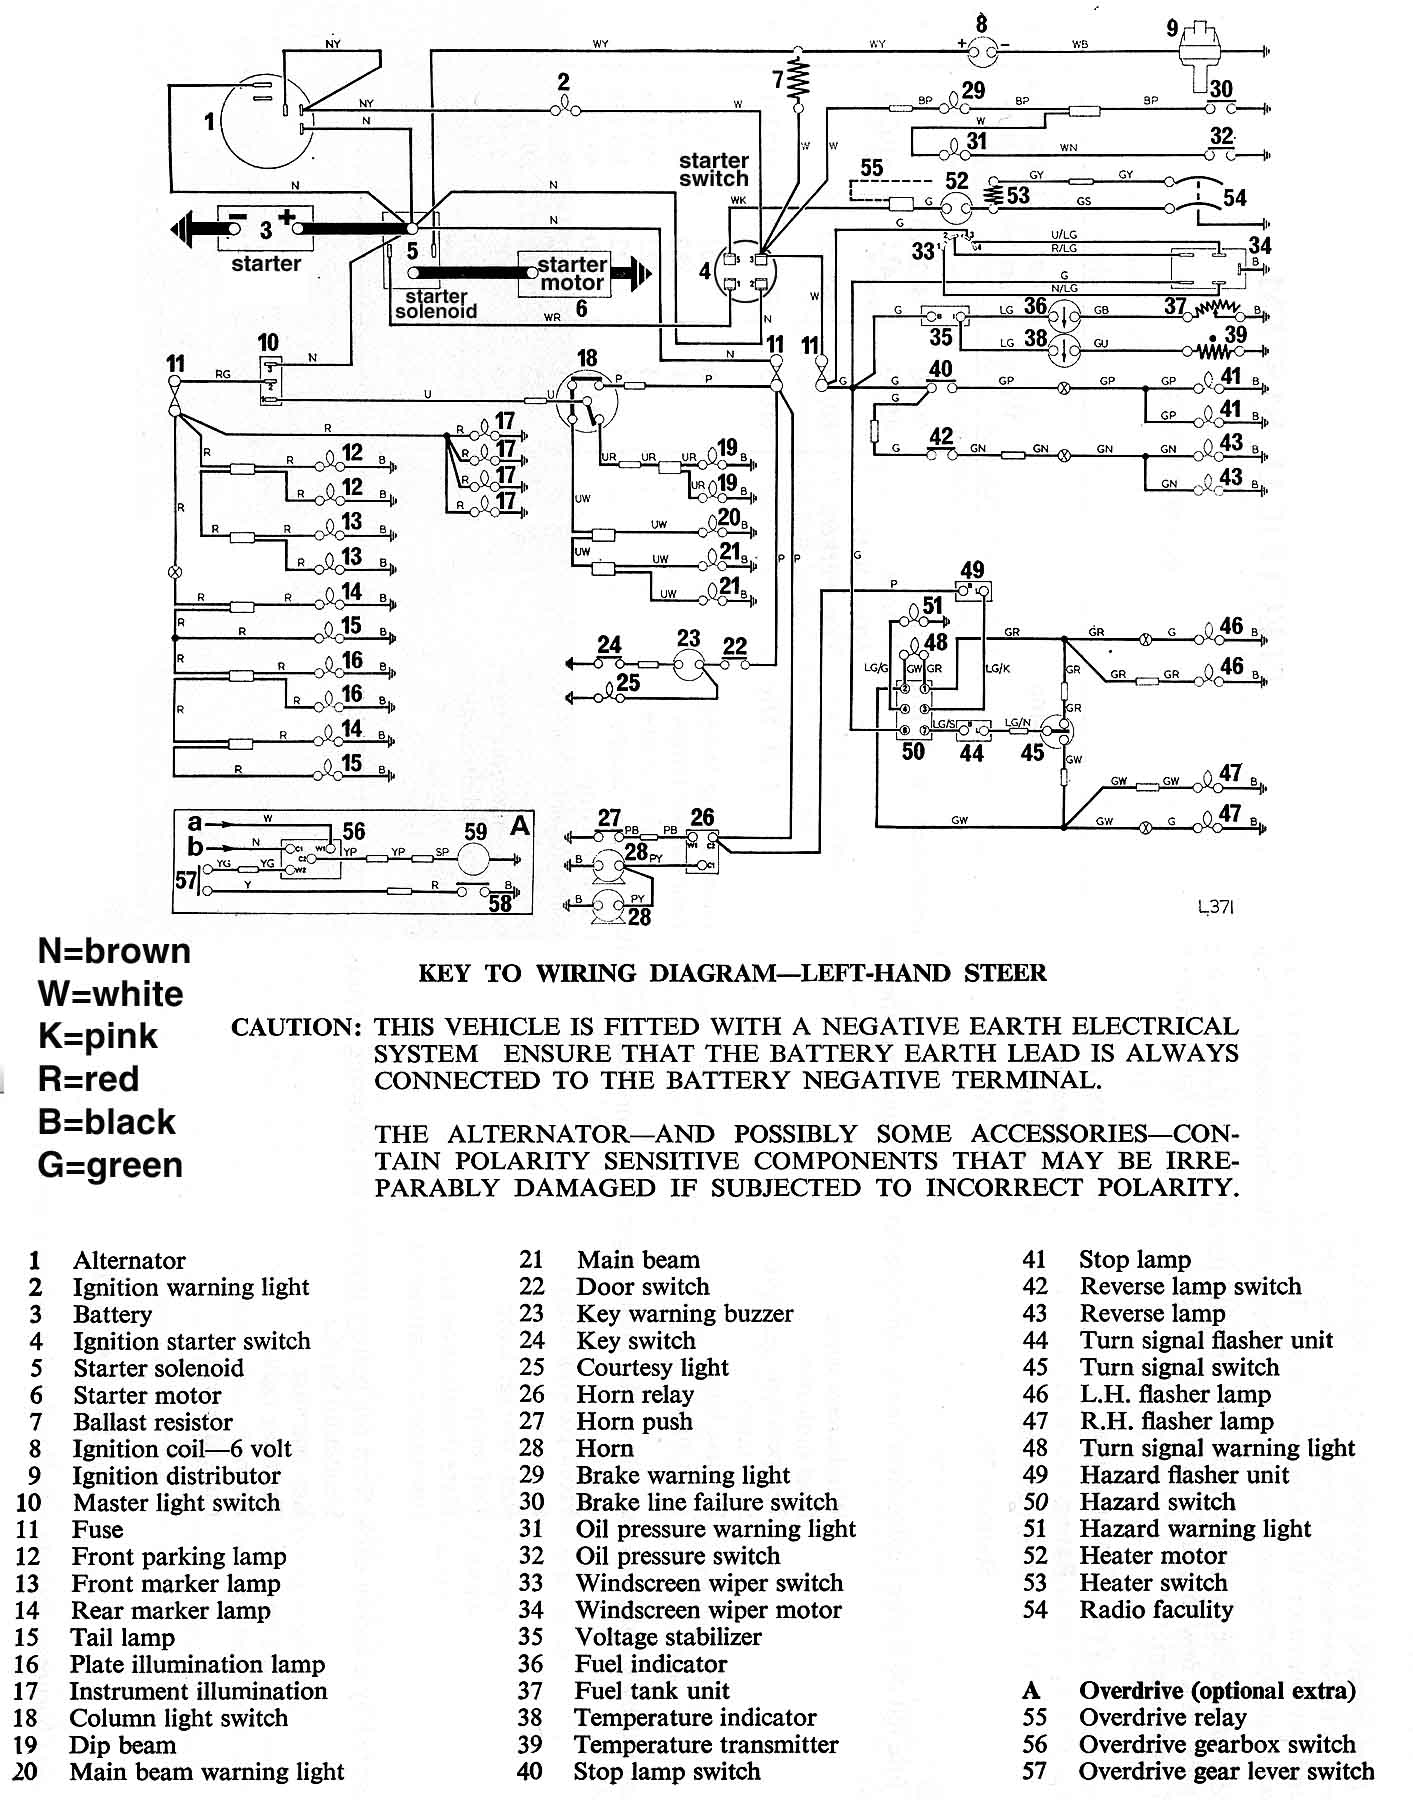 MKIVwire wiring schematics and diagrams triumph spitfire, gt6, herald Painless Wiring Harness Diagram at creativeand.co